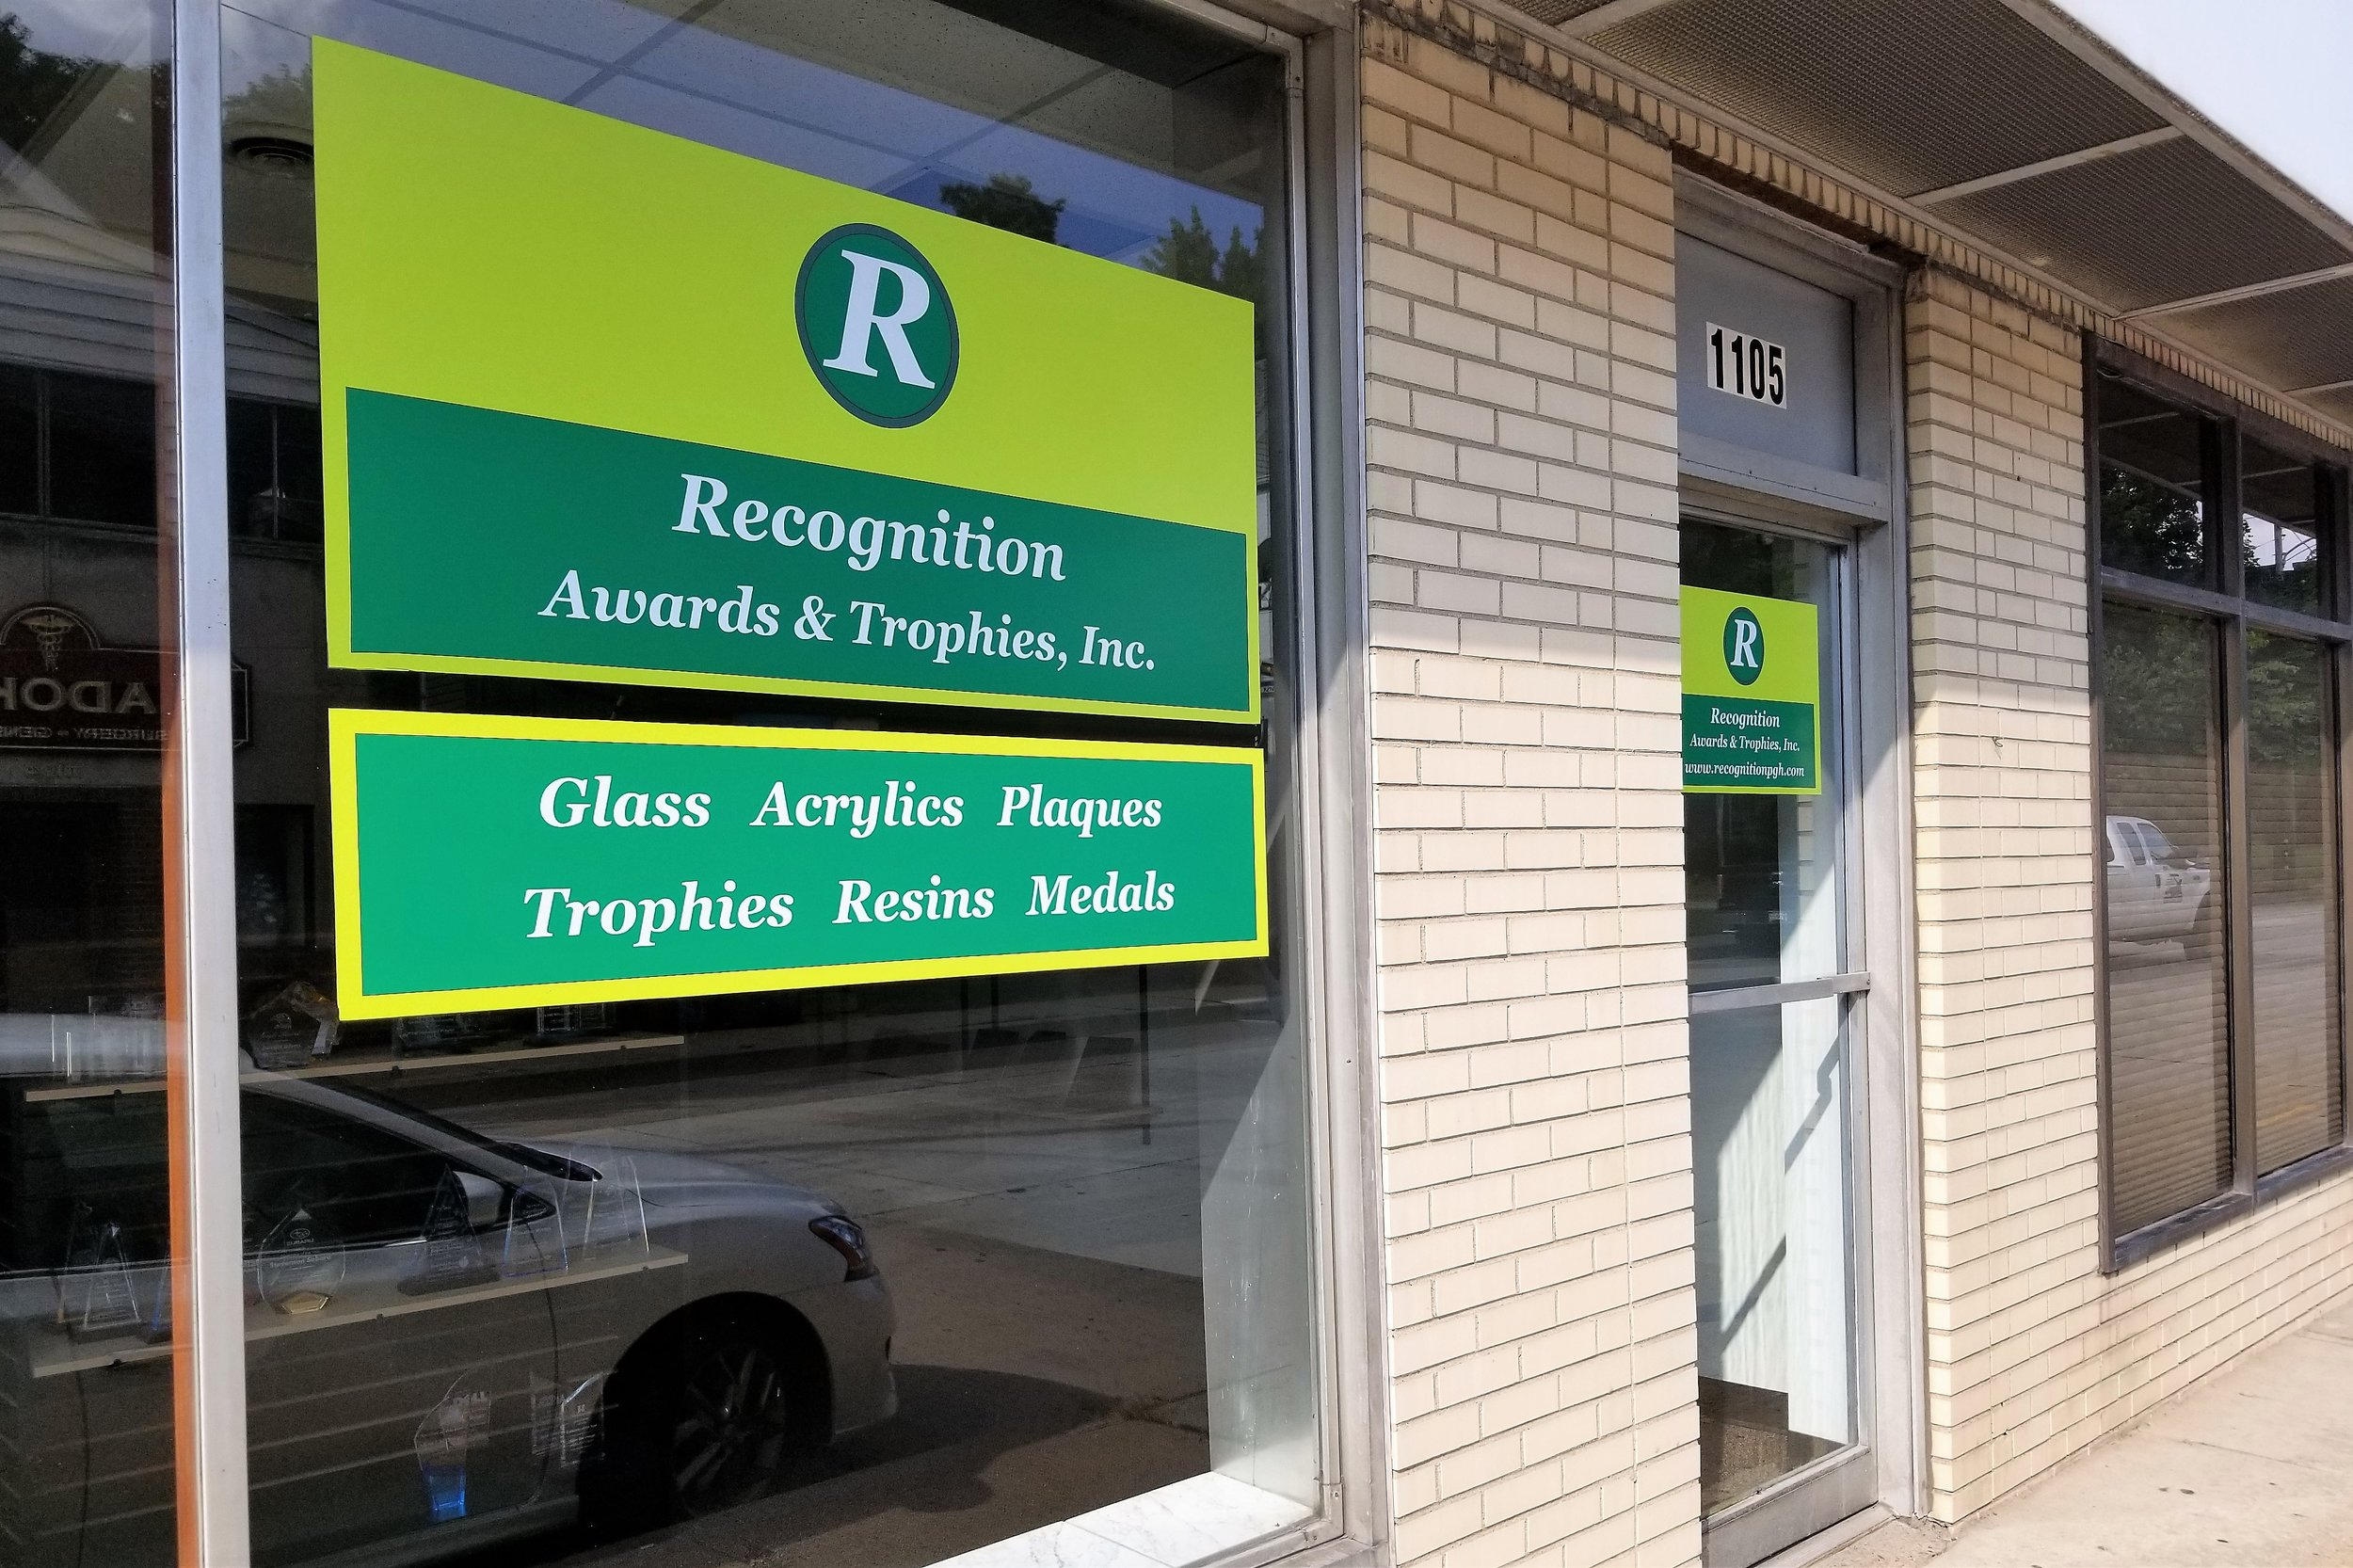 Recognition Awards & Trophies - 1105 5th Ave, (412) 262-6131